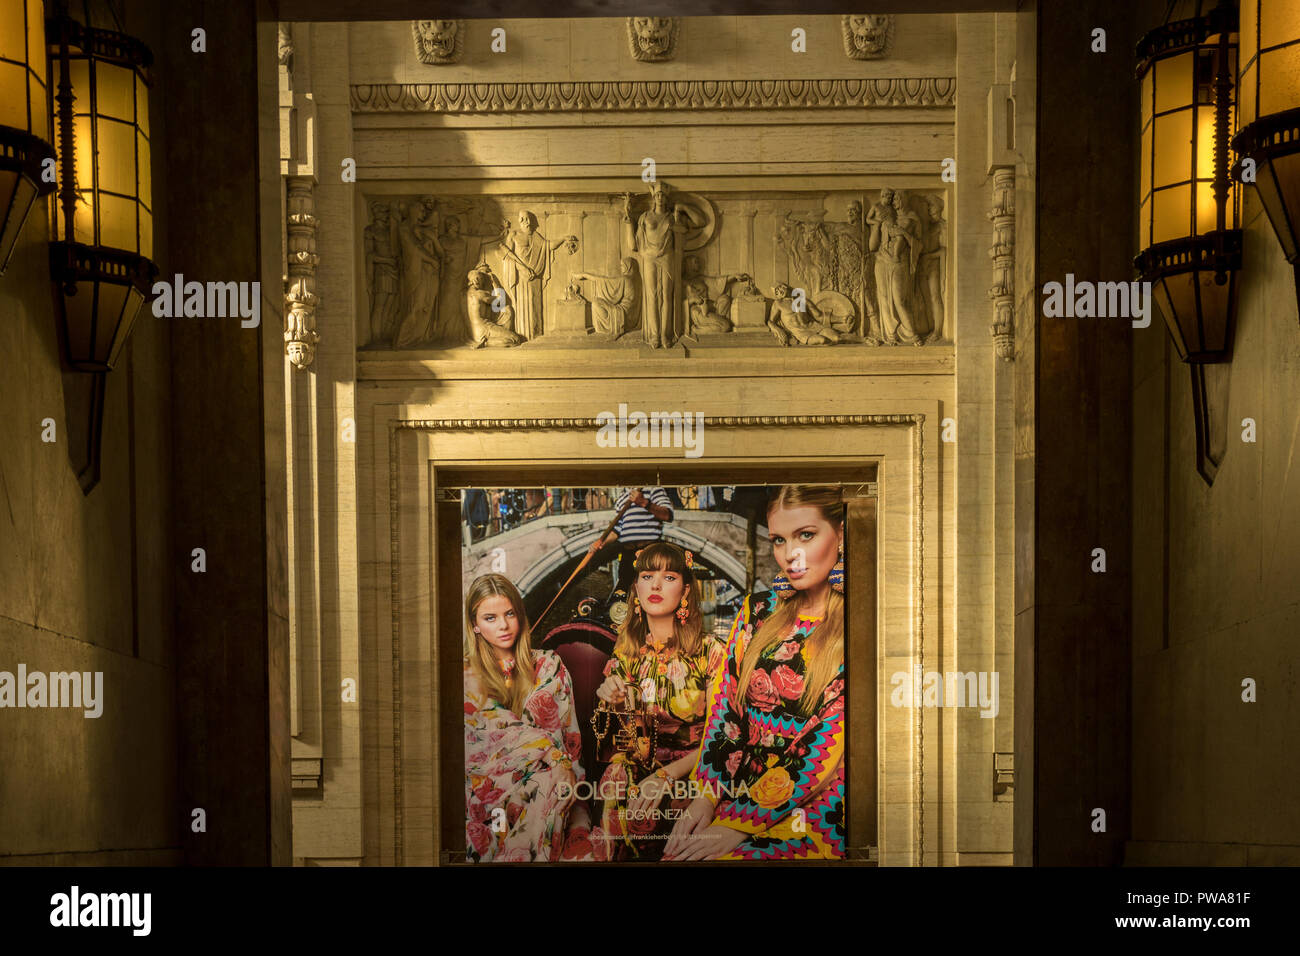 Milan - March 31: Dolce and Gabbana advertisement posted displayed on the walls of Milan Central railway station on March 31, 2018 in Milan, Italy. - Stock Image